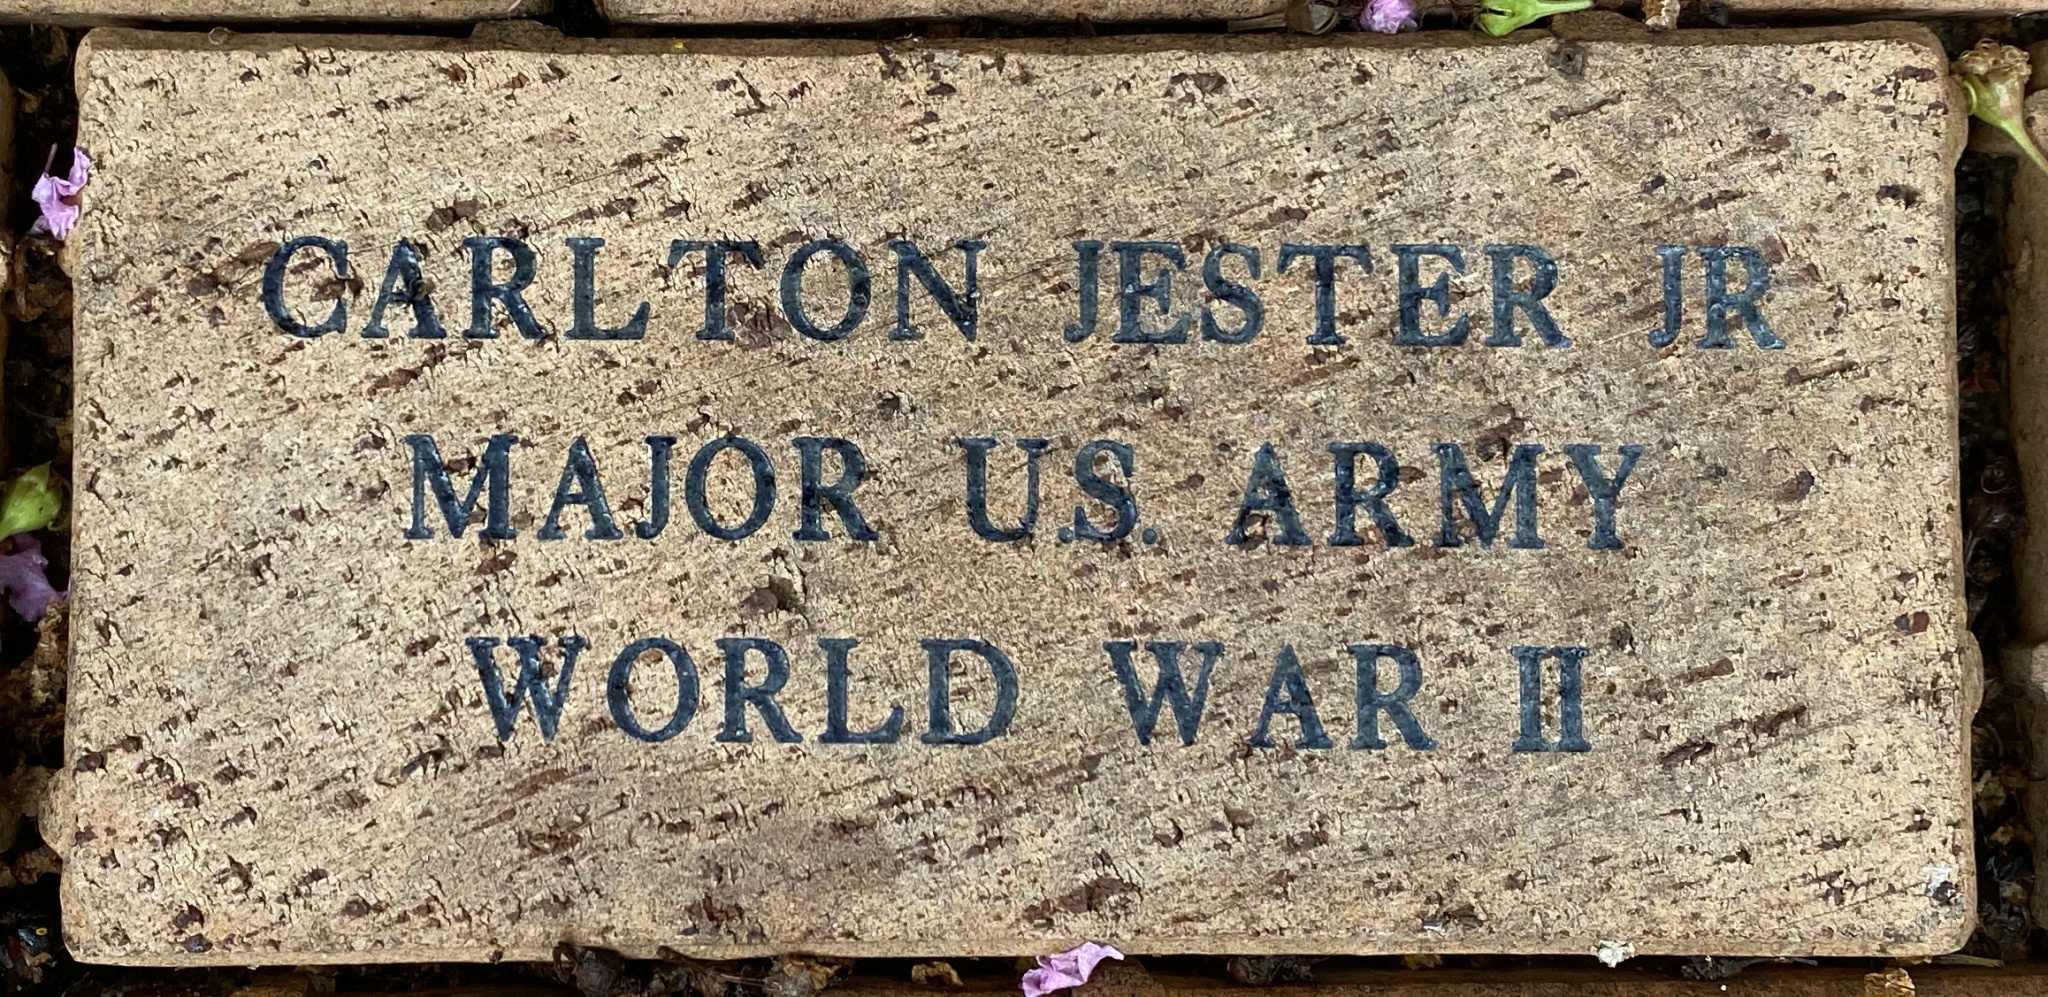 CARLTON JESTER JR. MAJOR U.S. ARMY WORLD WAR II